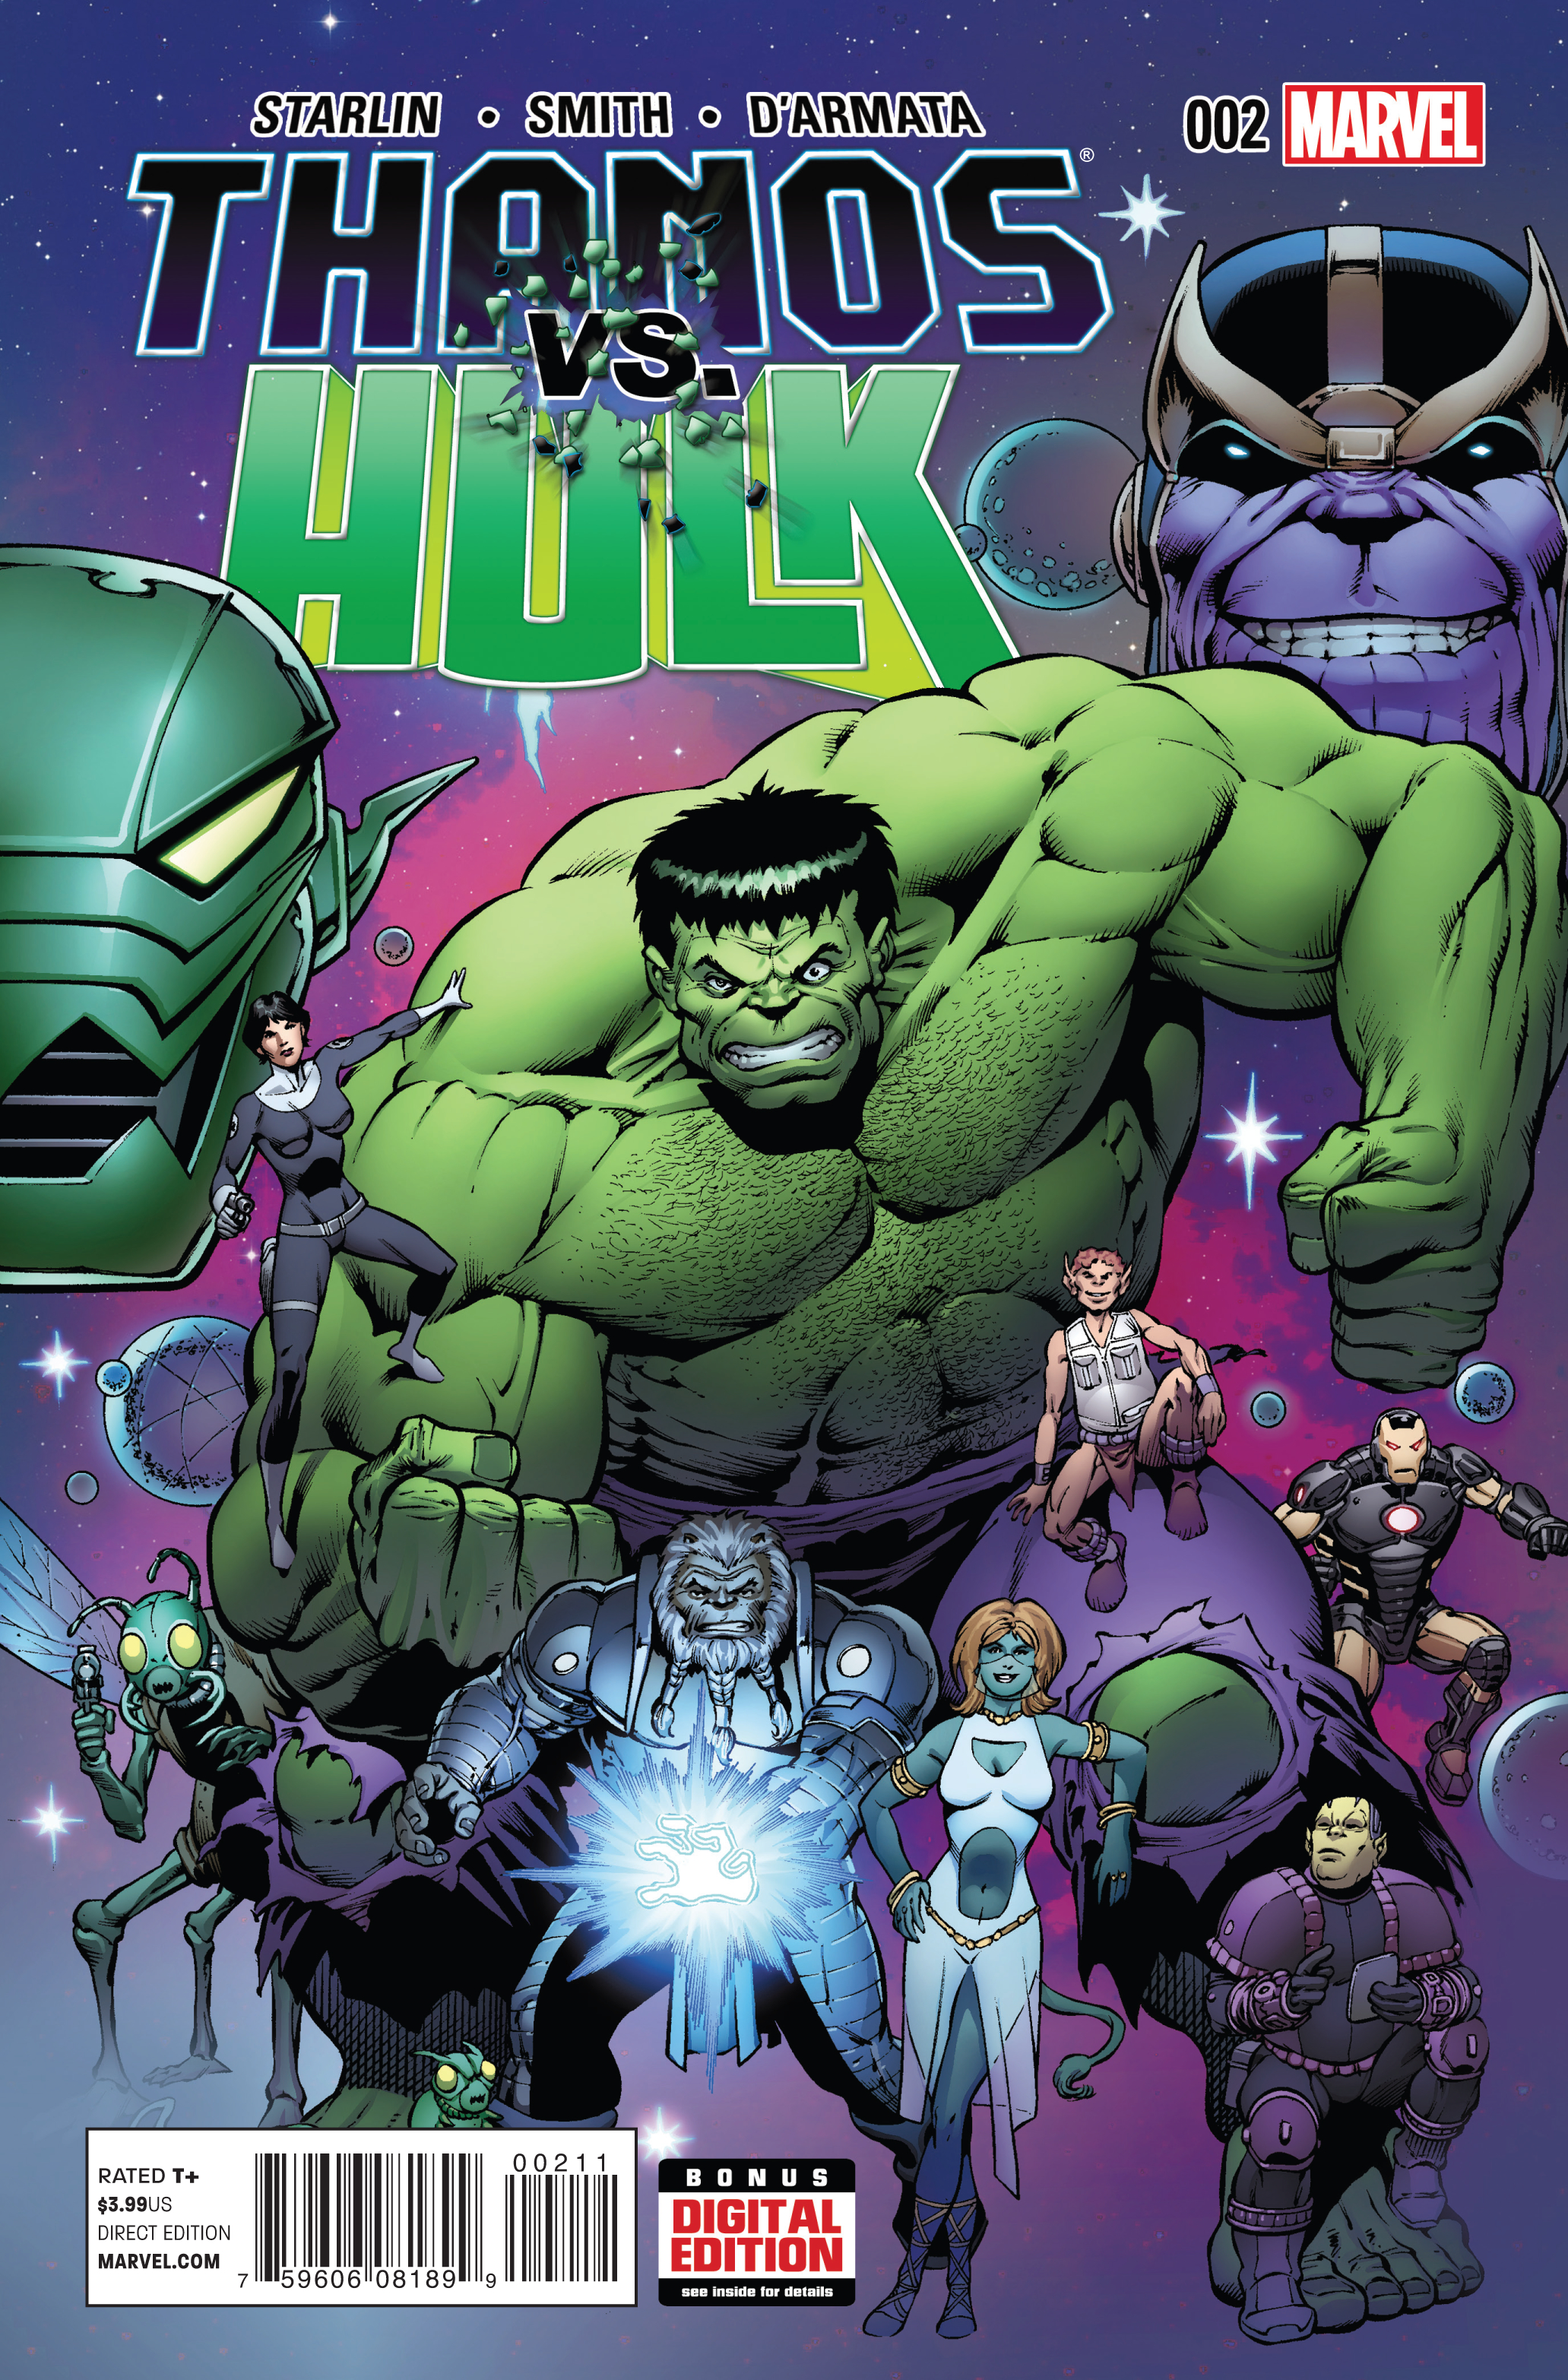 THANOS VS HULK #2